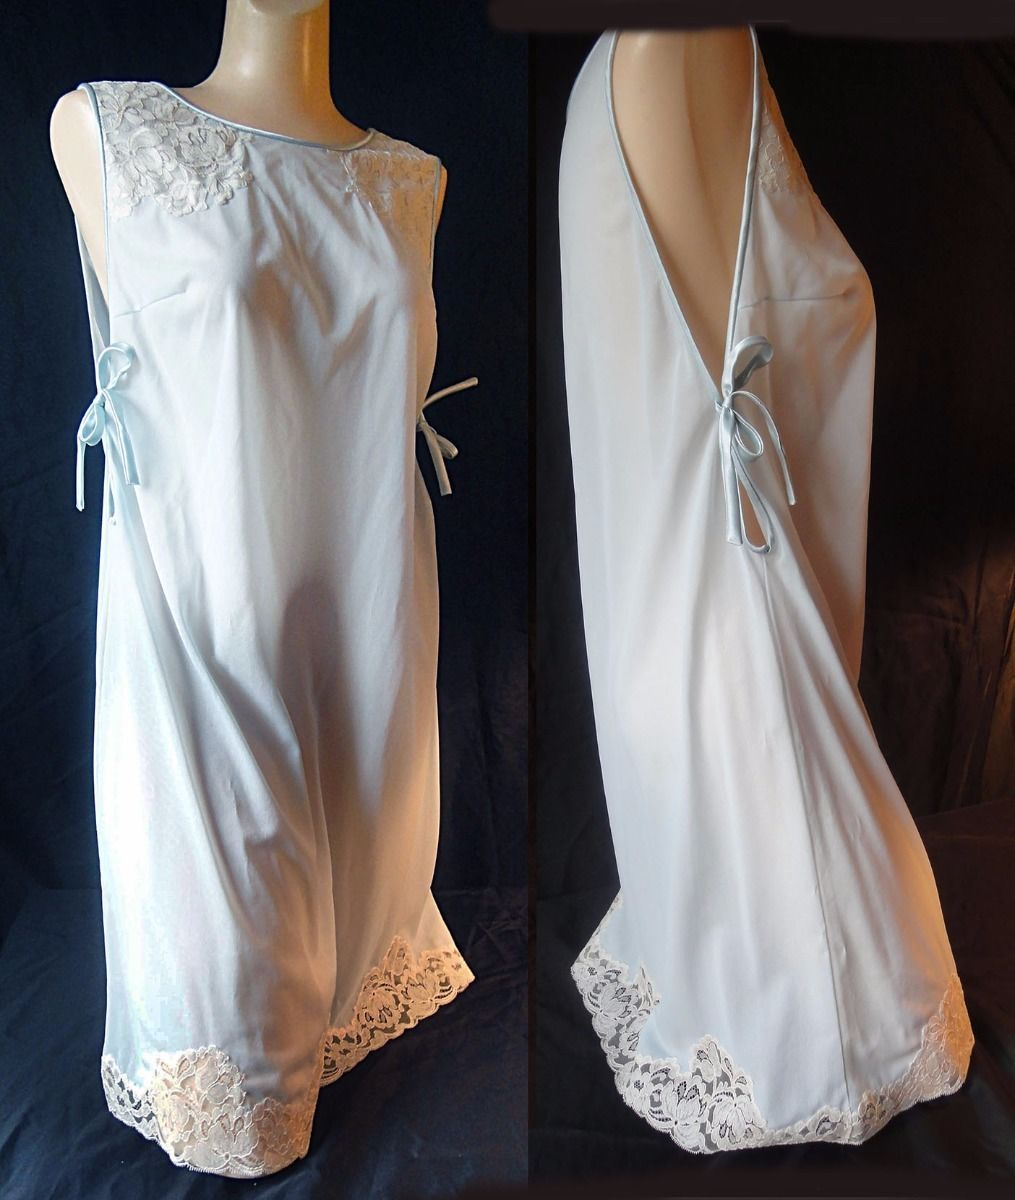 Primary image for Vintage 60s Vassarette nightgown pale blue Grecian style  nylon lace tricot S